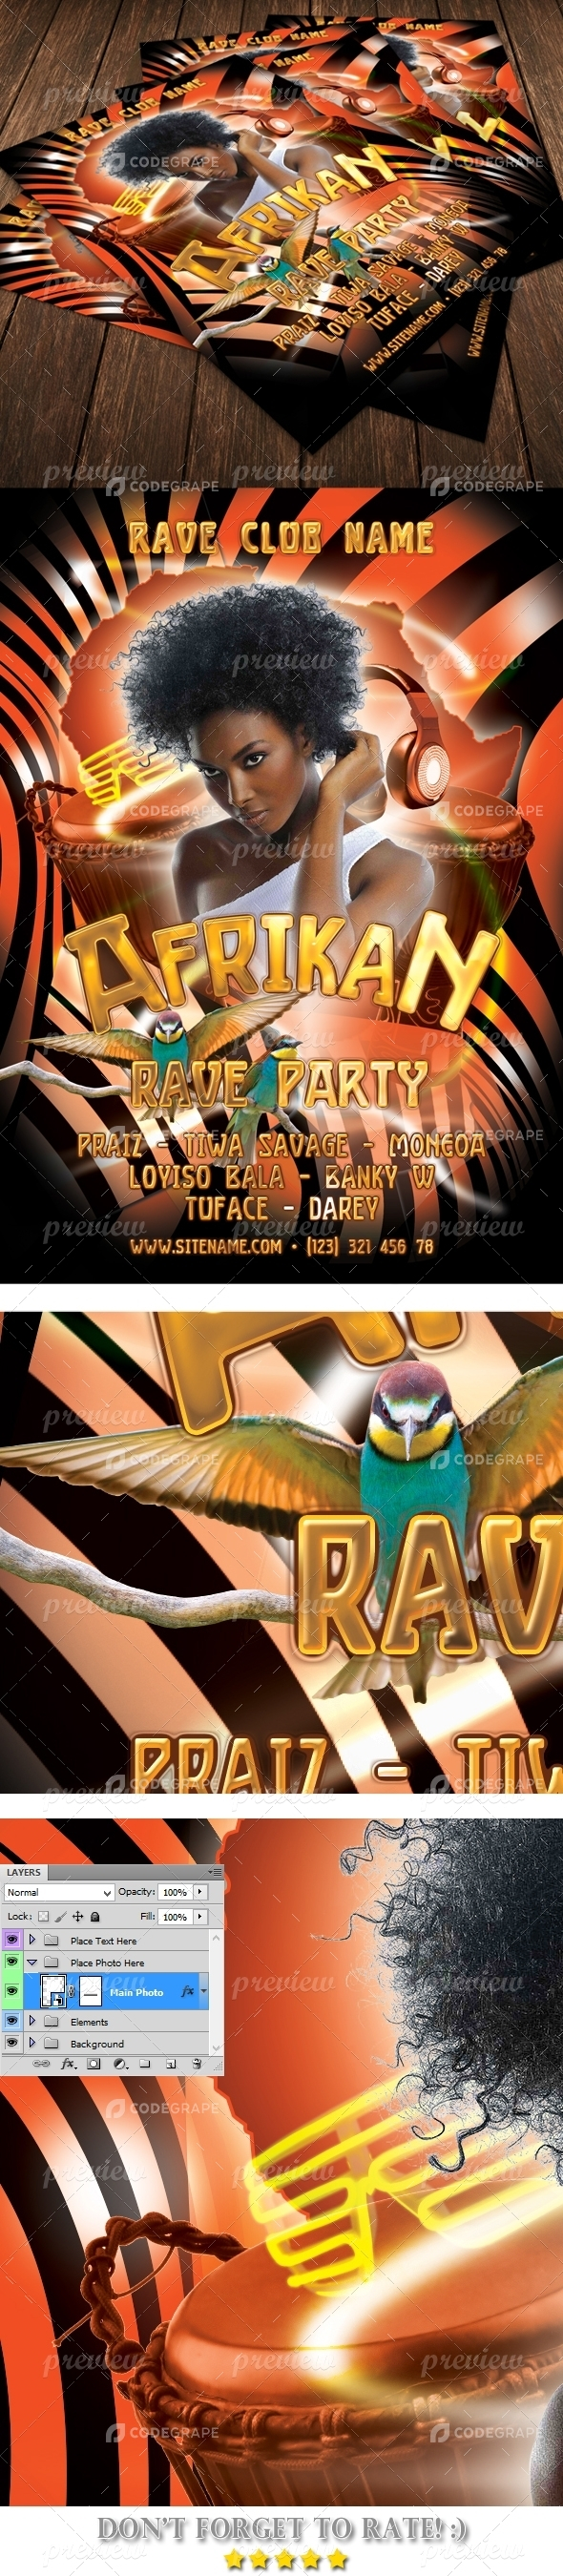 Rave Party Flyer Template